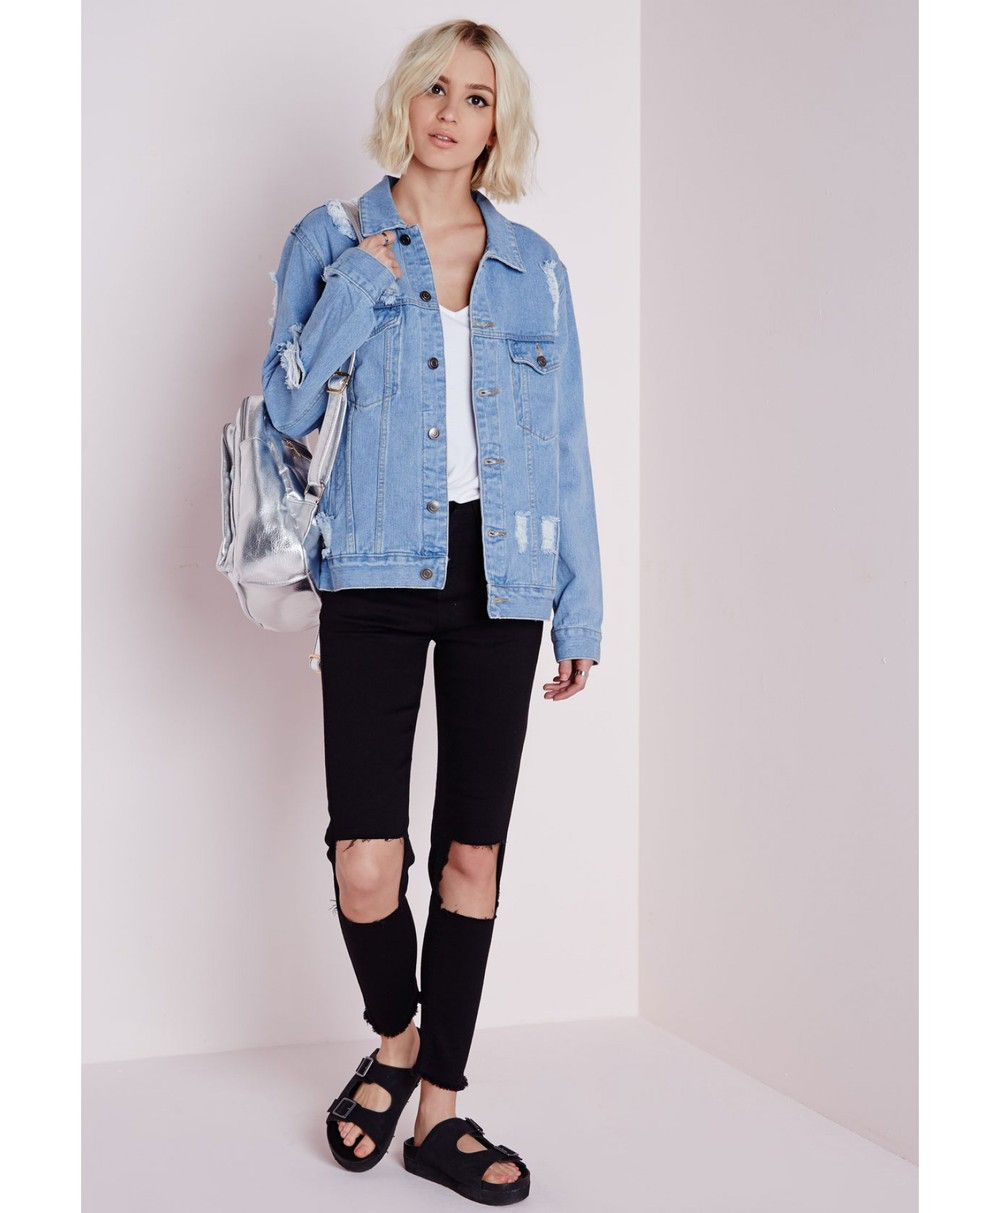 ba3b4a15aa4 Women s Damaged Rip Oversized Denim Jacket   Jeans Coat   Women s Custom Denim  Jacket with ripped